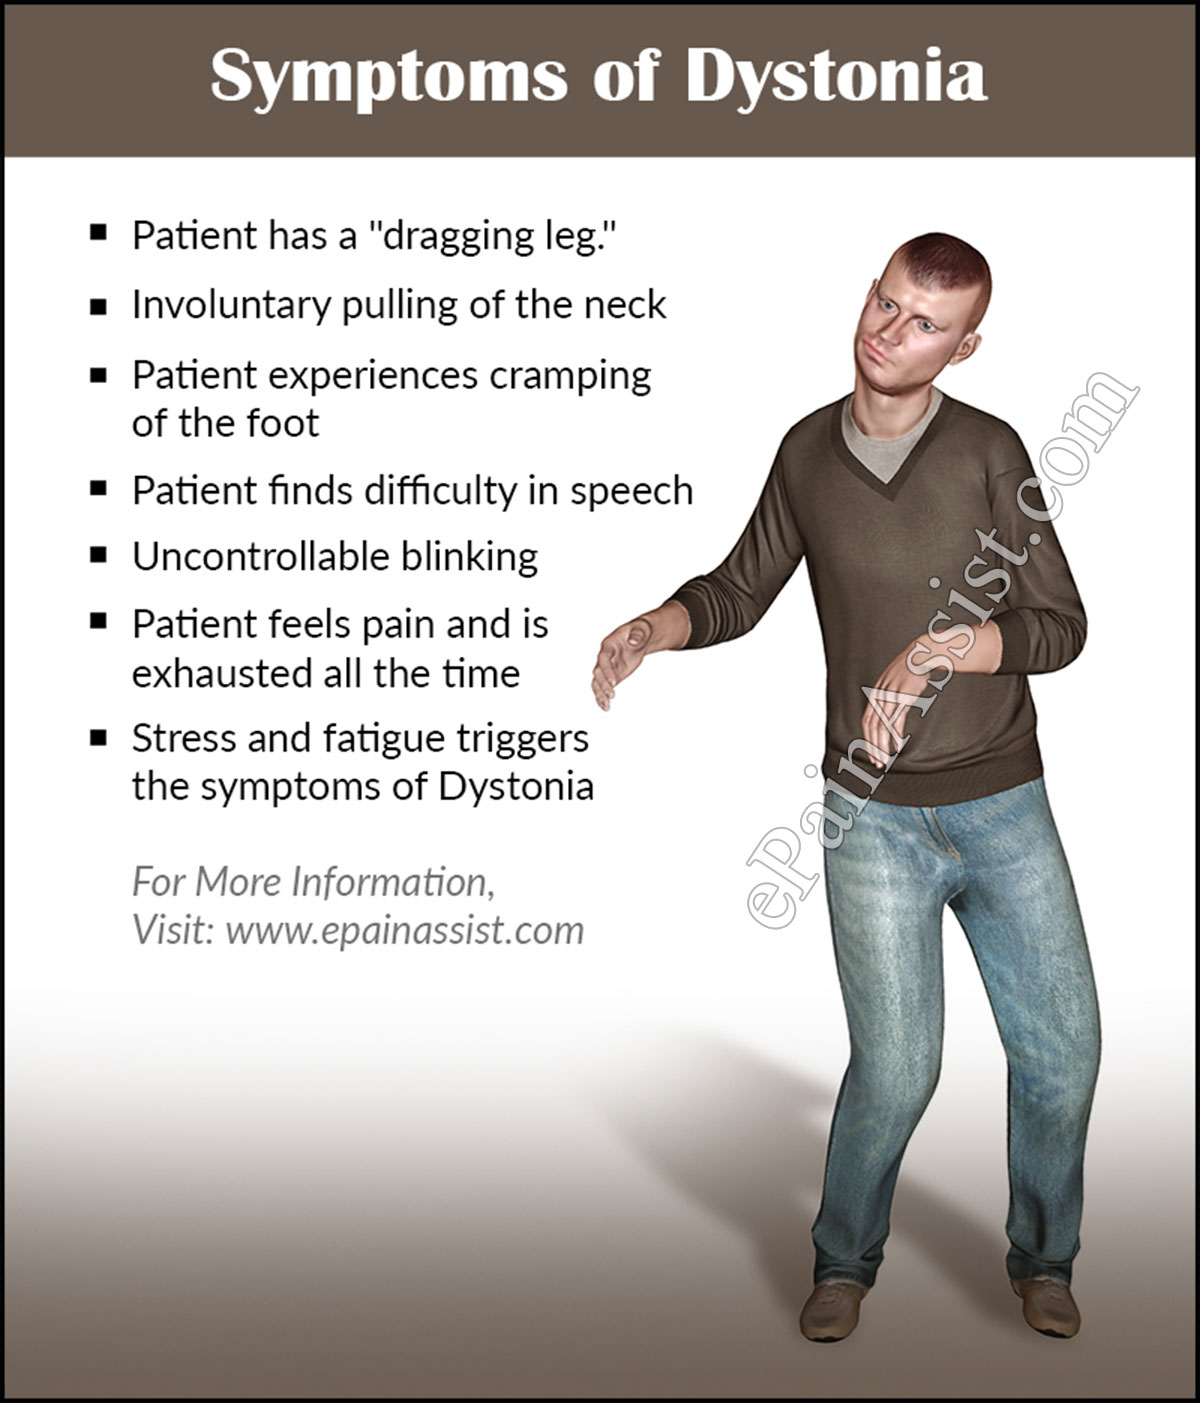 Signs and Symptoms of Dystonia